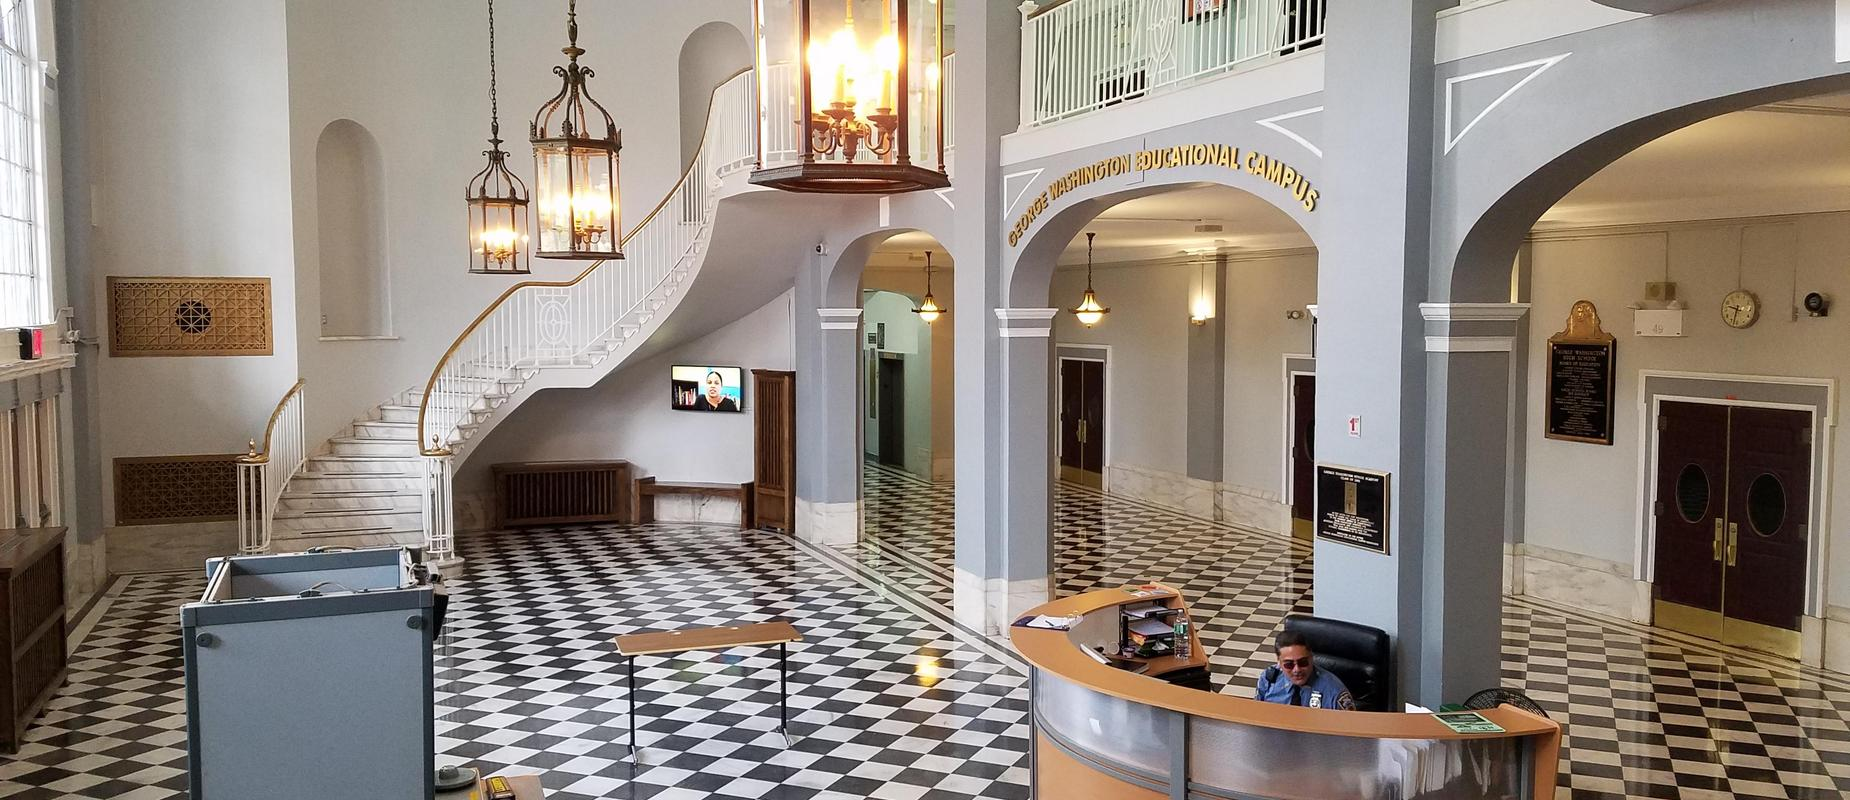 The lobby of George Washington Educational Campus